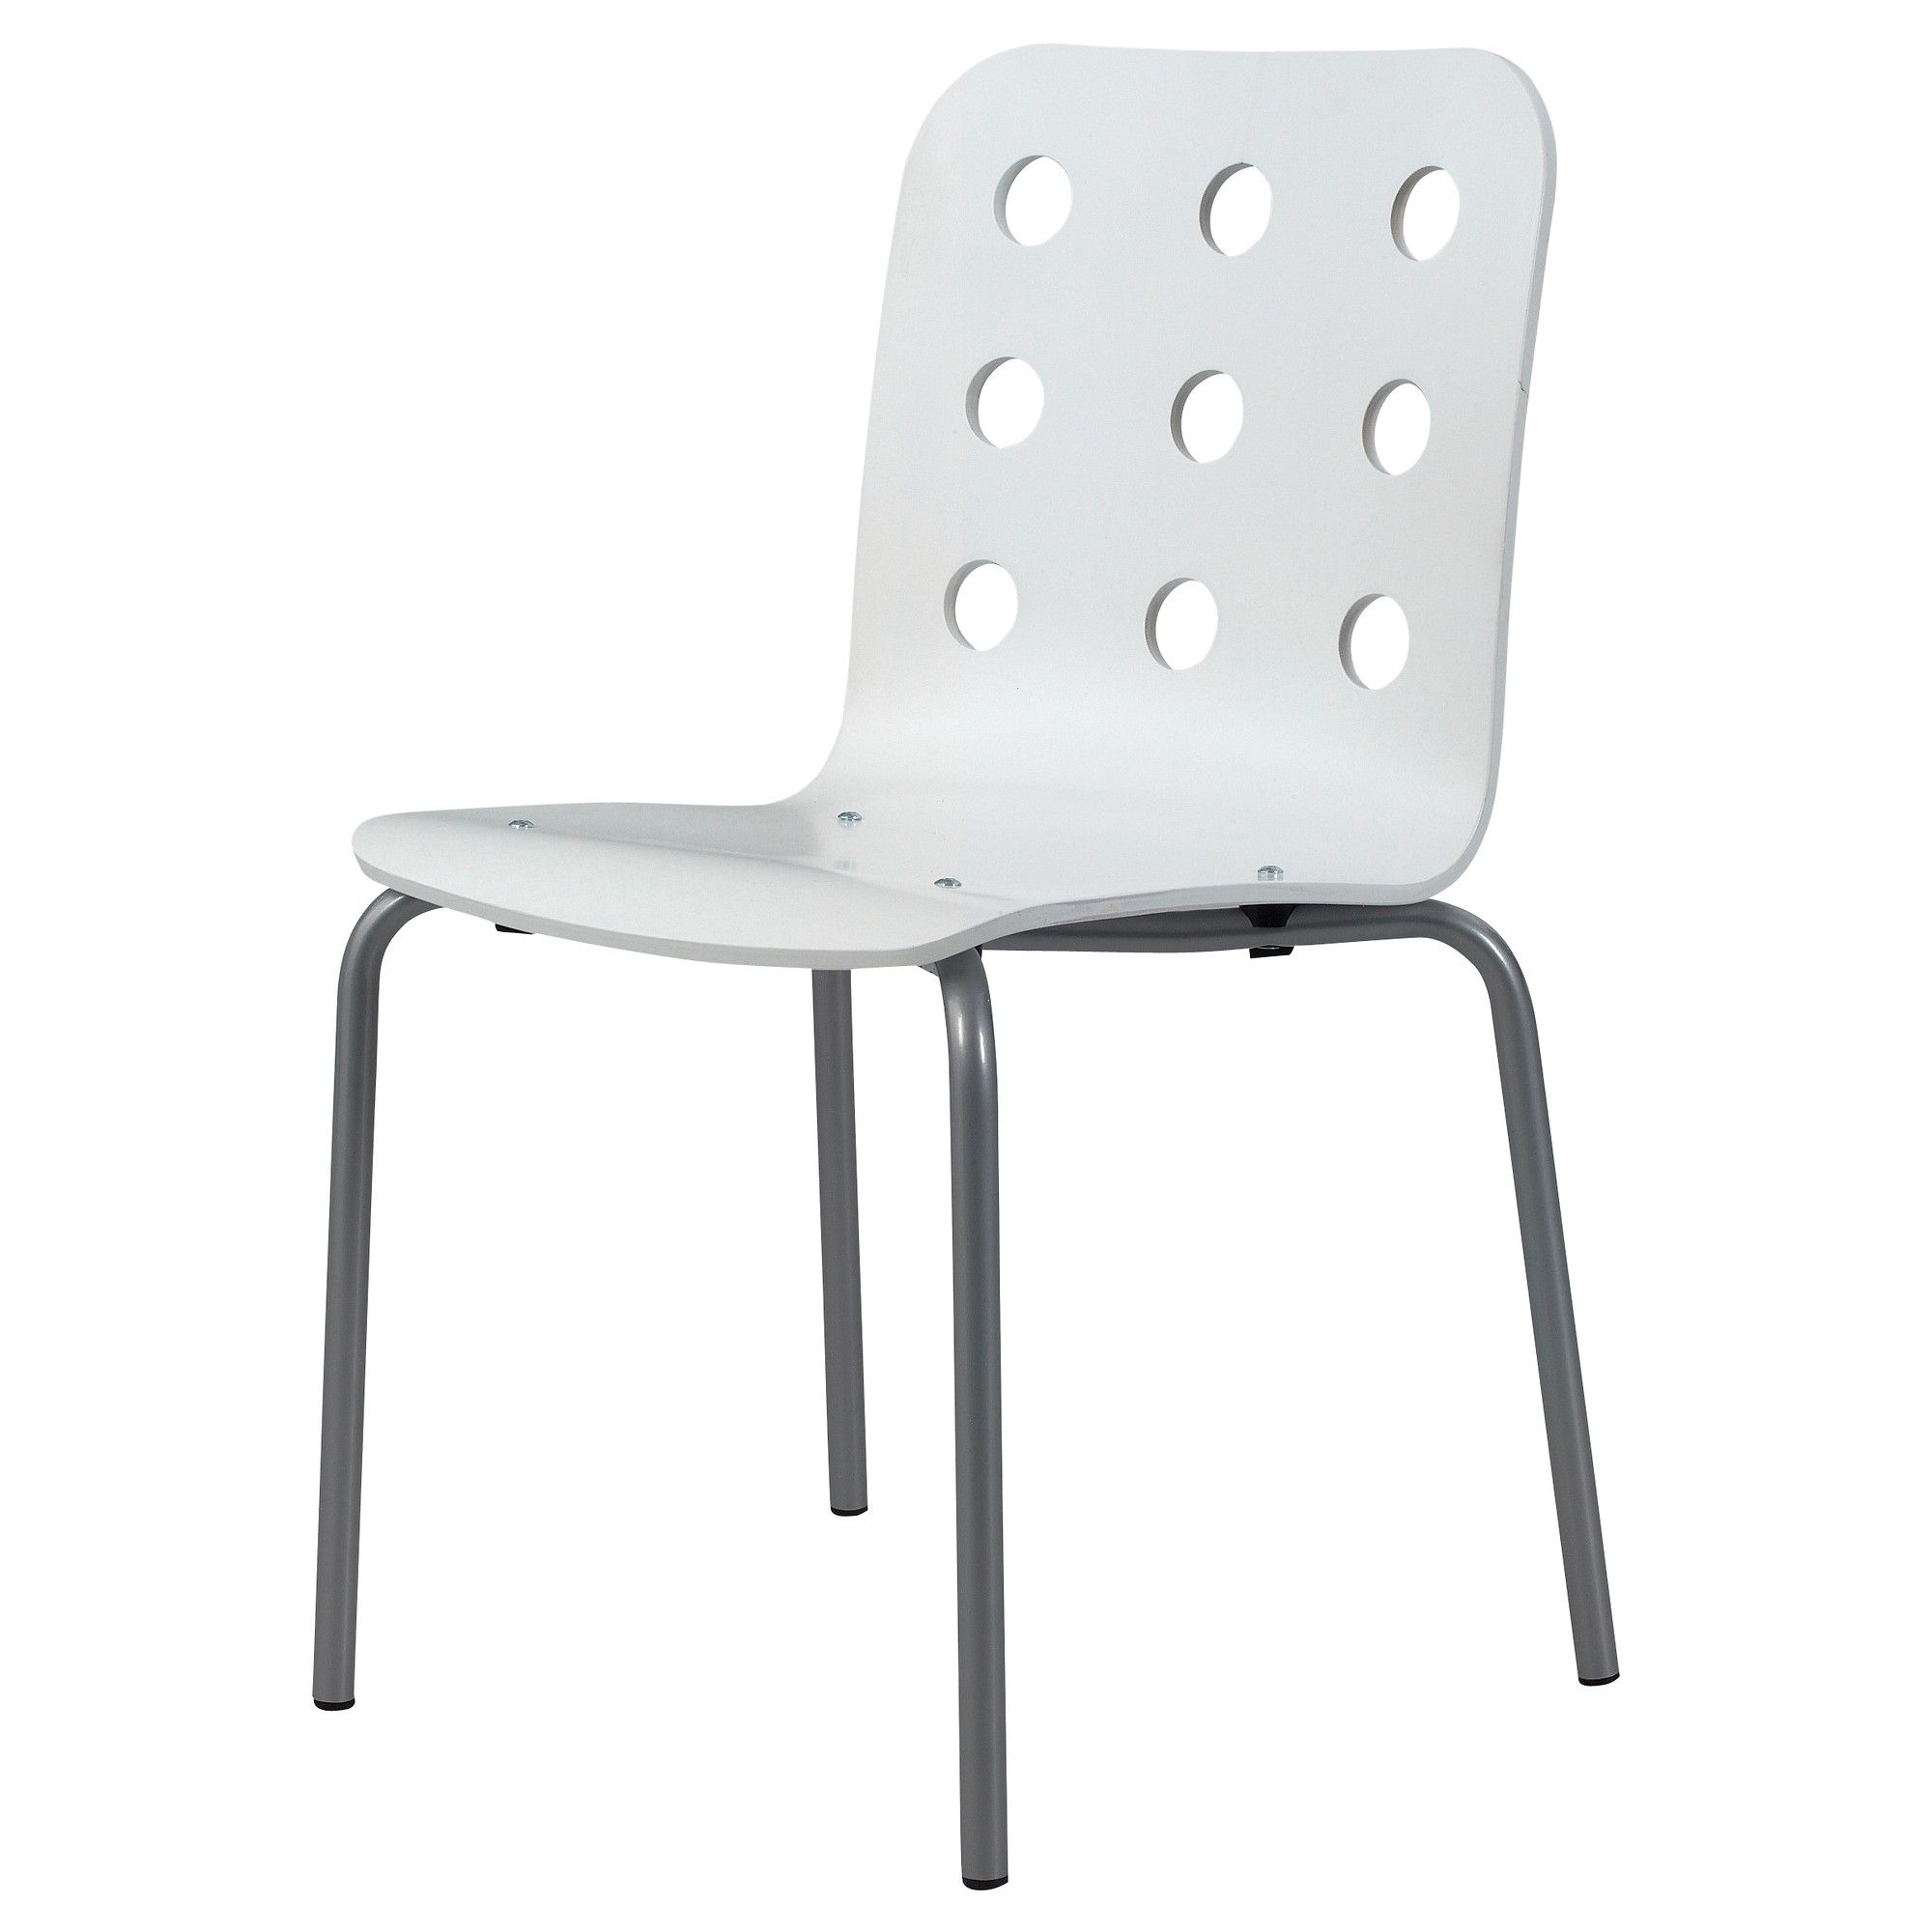 JULES Visitor chair white silver color IKEA $35 also es in